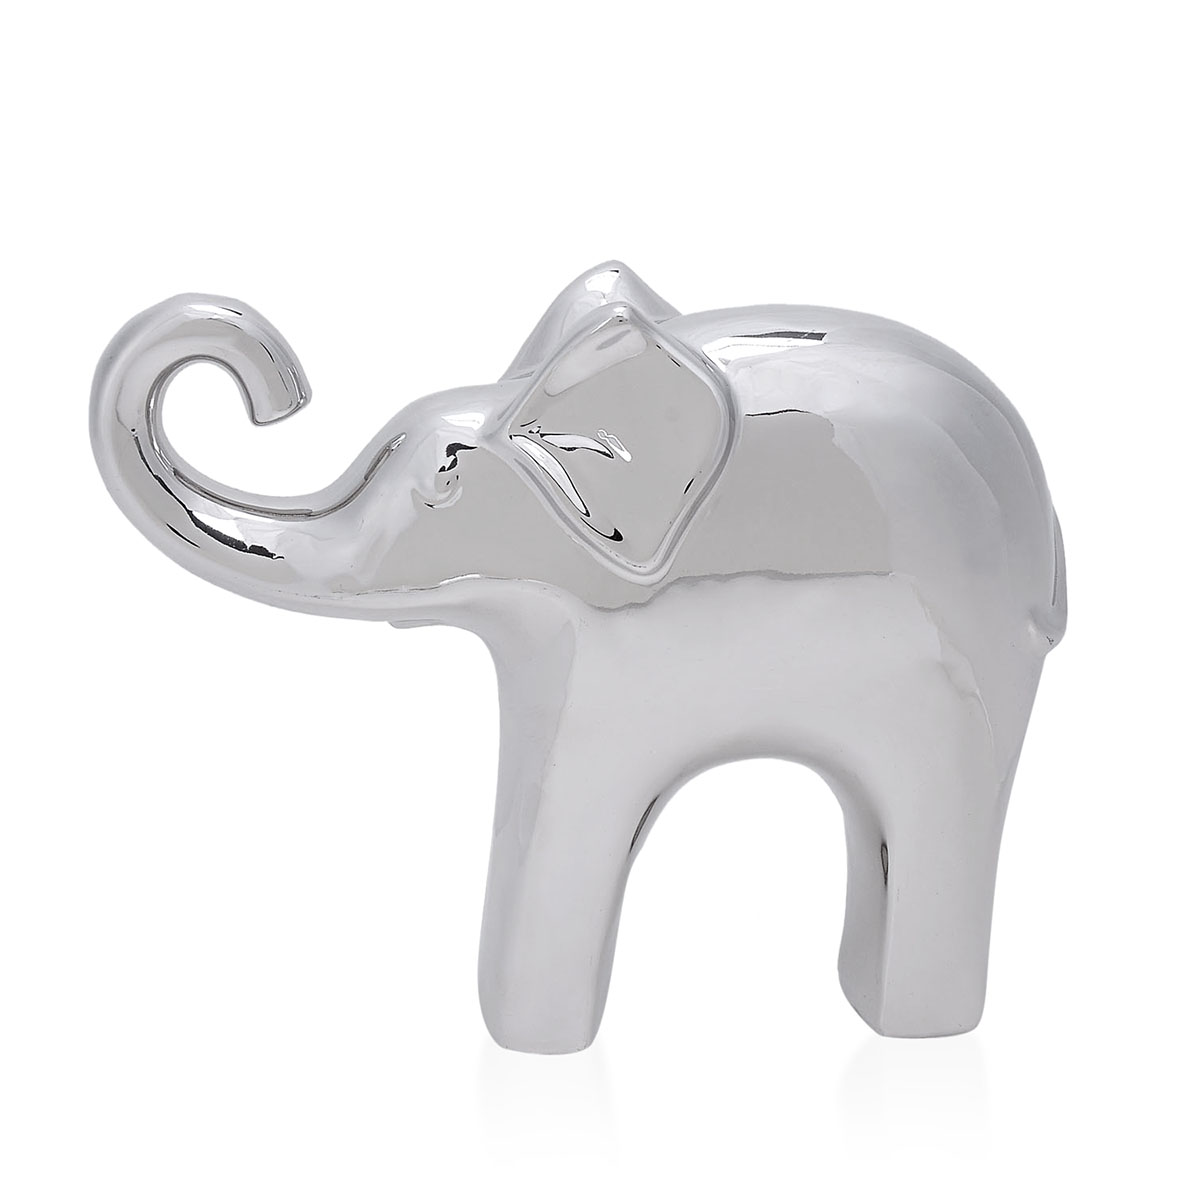 Home decor silver ceramic elephant 21x18x4 5 cm home decor accessories online store Silver elephant home decor